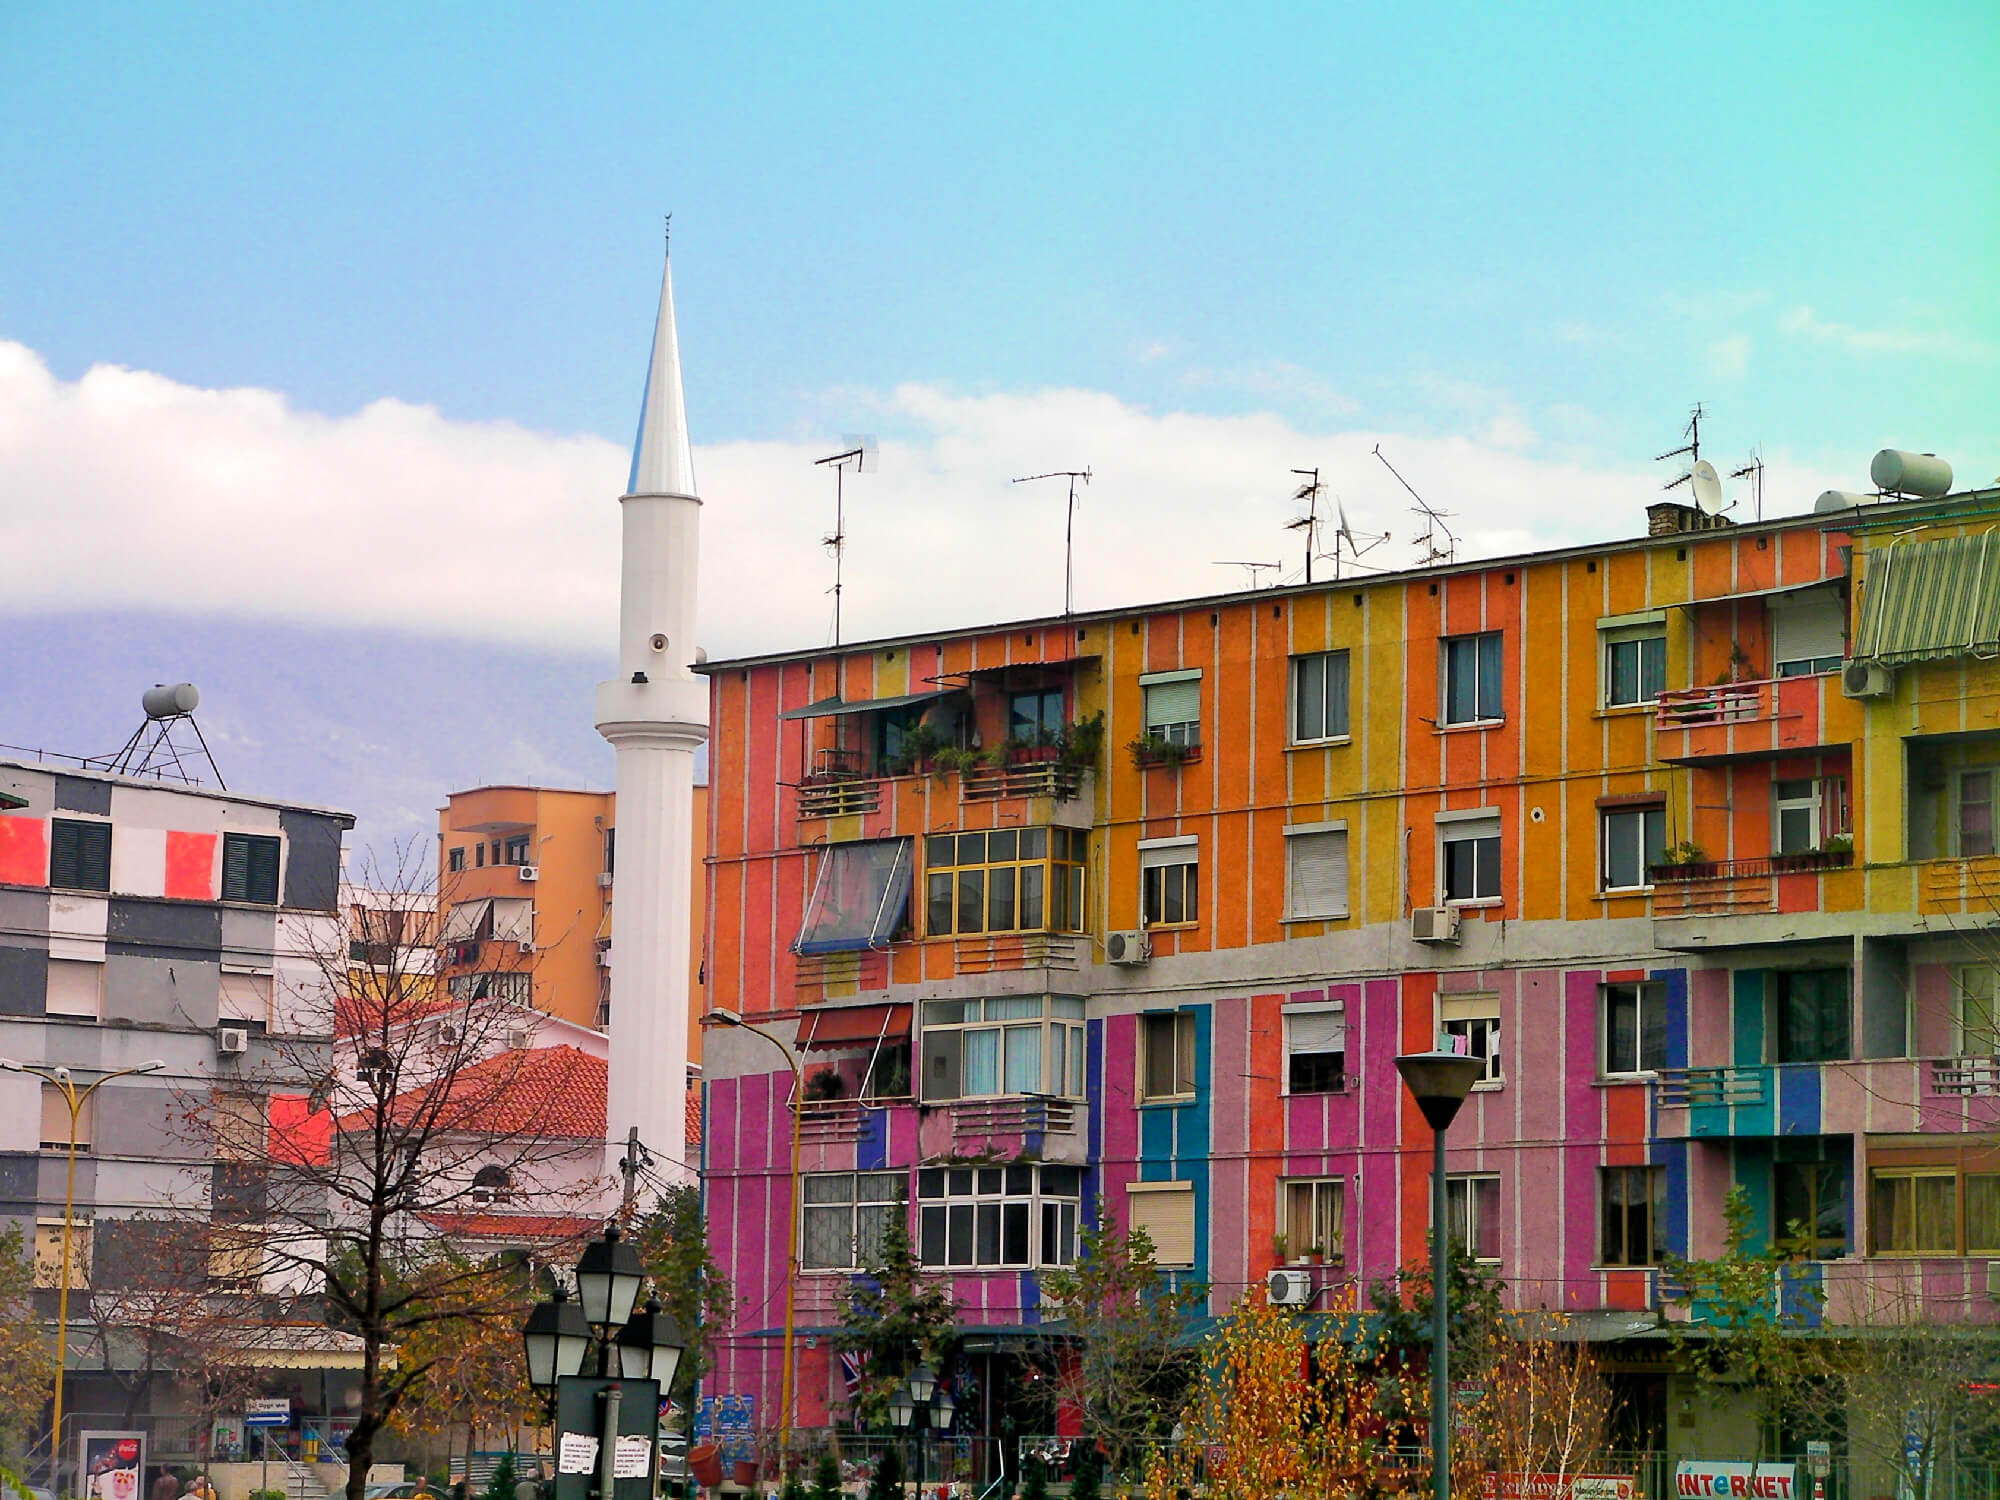 Multi-Coloured Houses in Tiranë, Albania